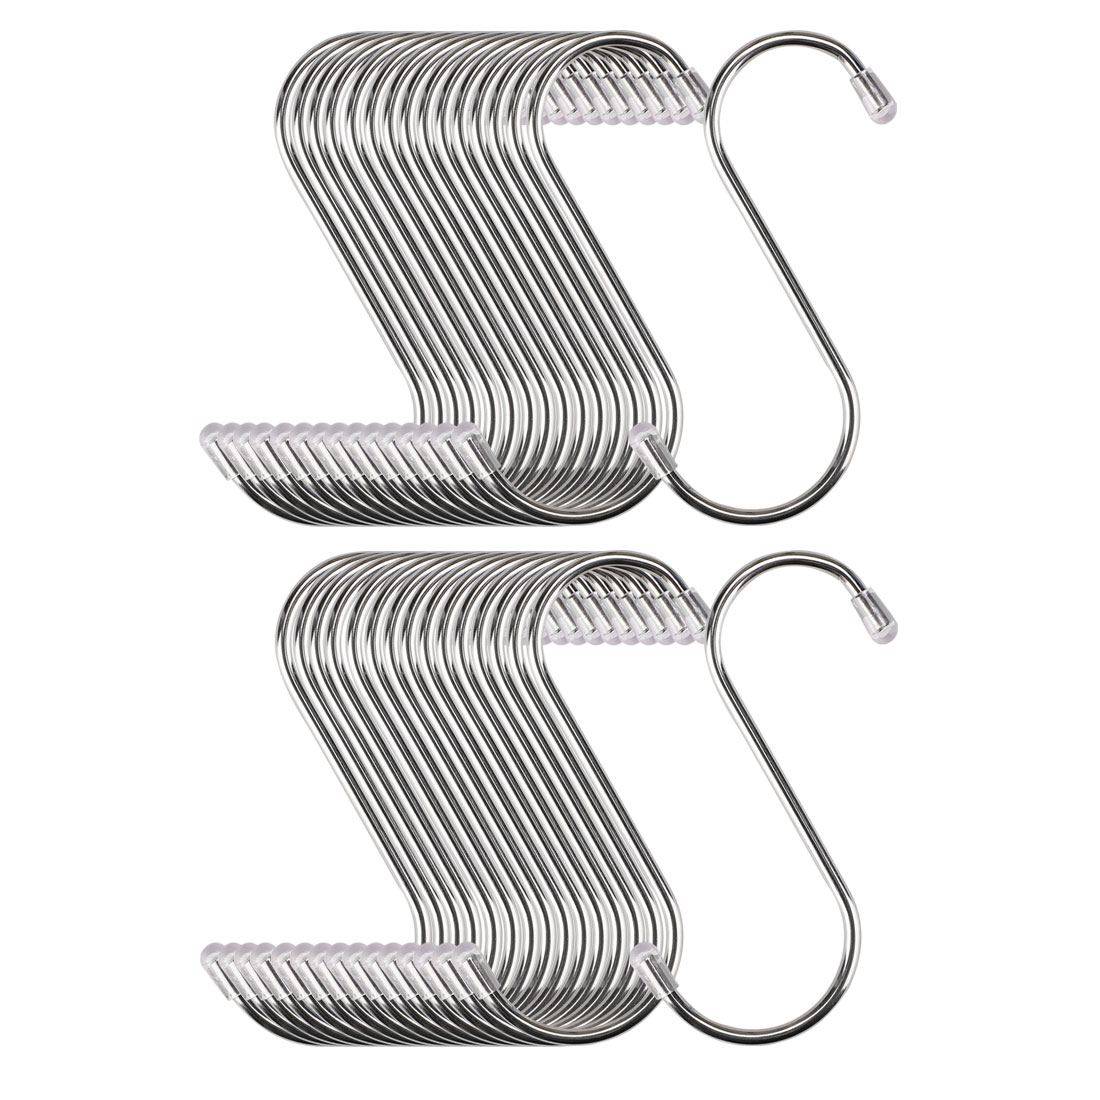 32pcs 3.46 Inch S Shaped Hook Stainless Steel for Kitchenware Hat Coat Holder